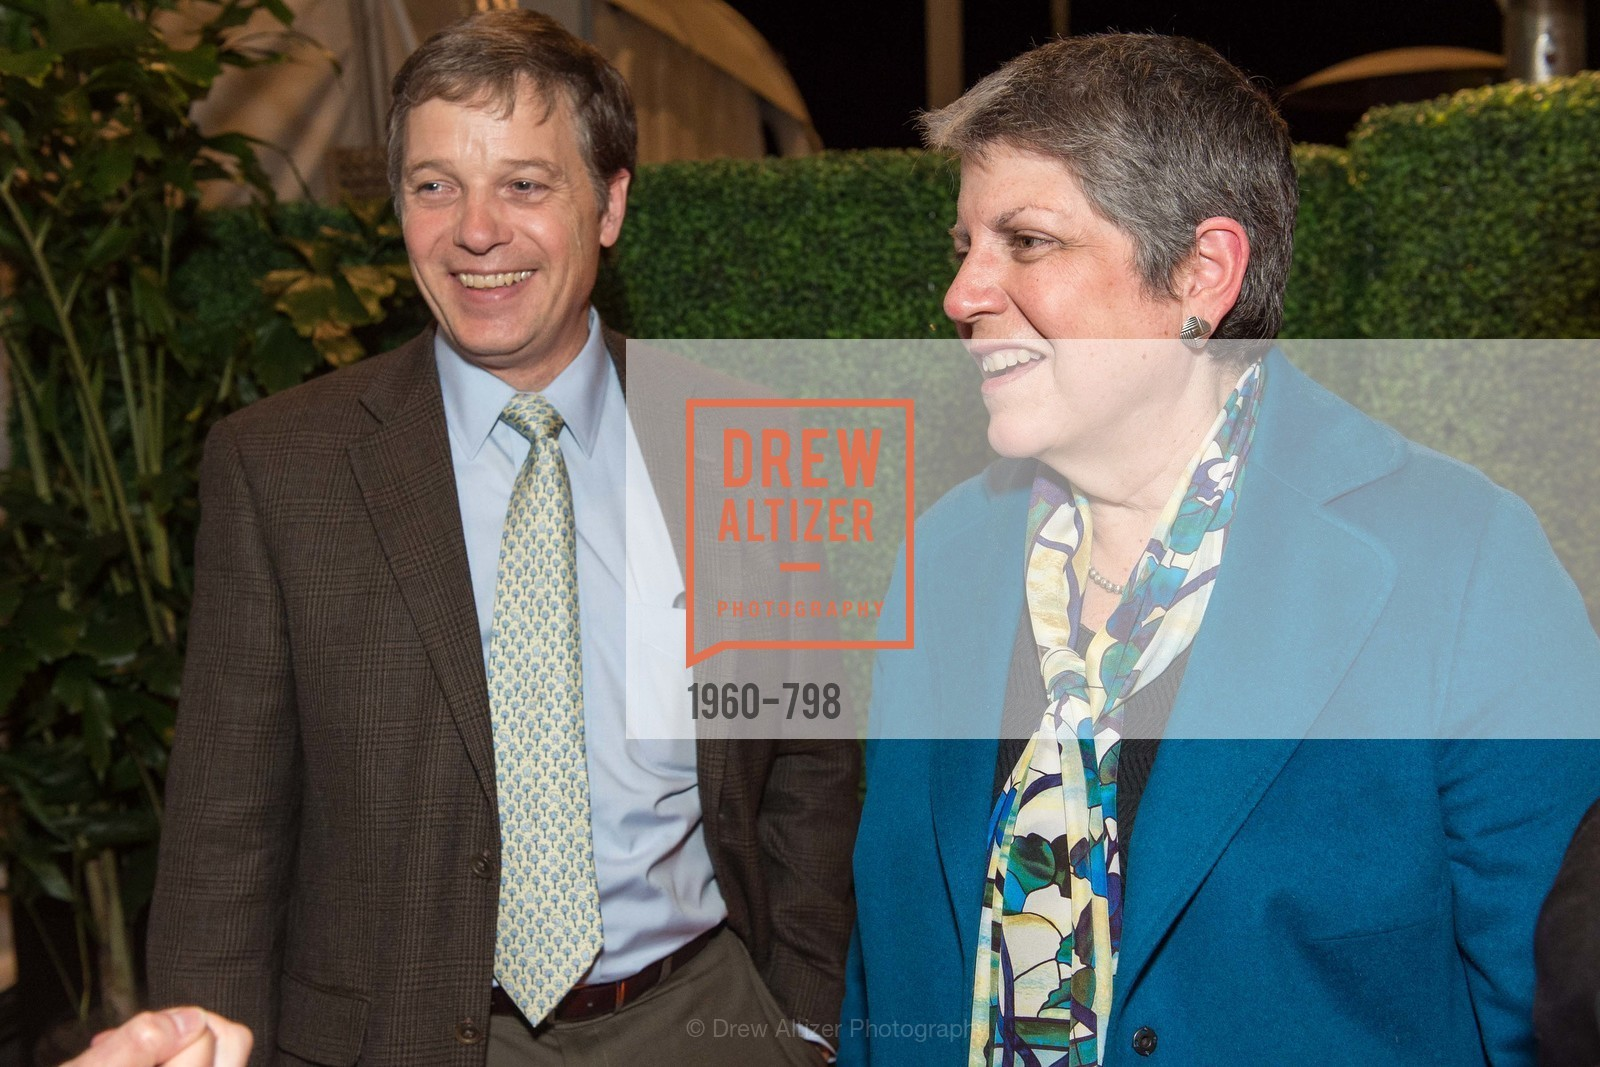 Janet Napolitano, CALIFORNIA ACADEMY OF SCIENCES - Big Bang Gala 2015, US, April 23rd, 2015,Drew Altizer, Drew Altizer Photography, full-service agency, private events, San Francisco photographer, photographer california